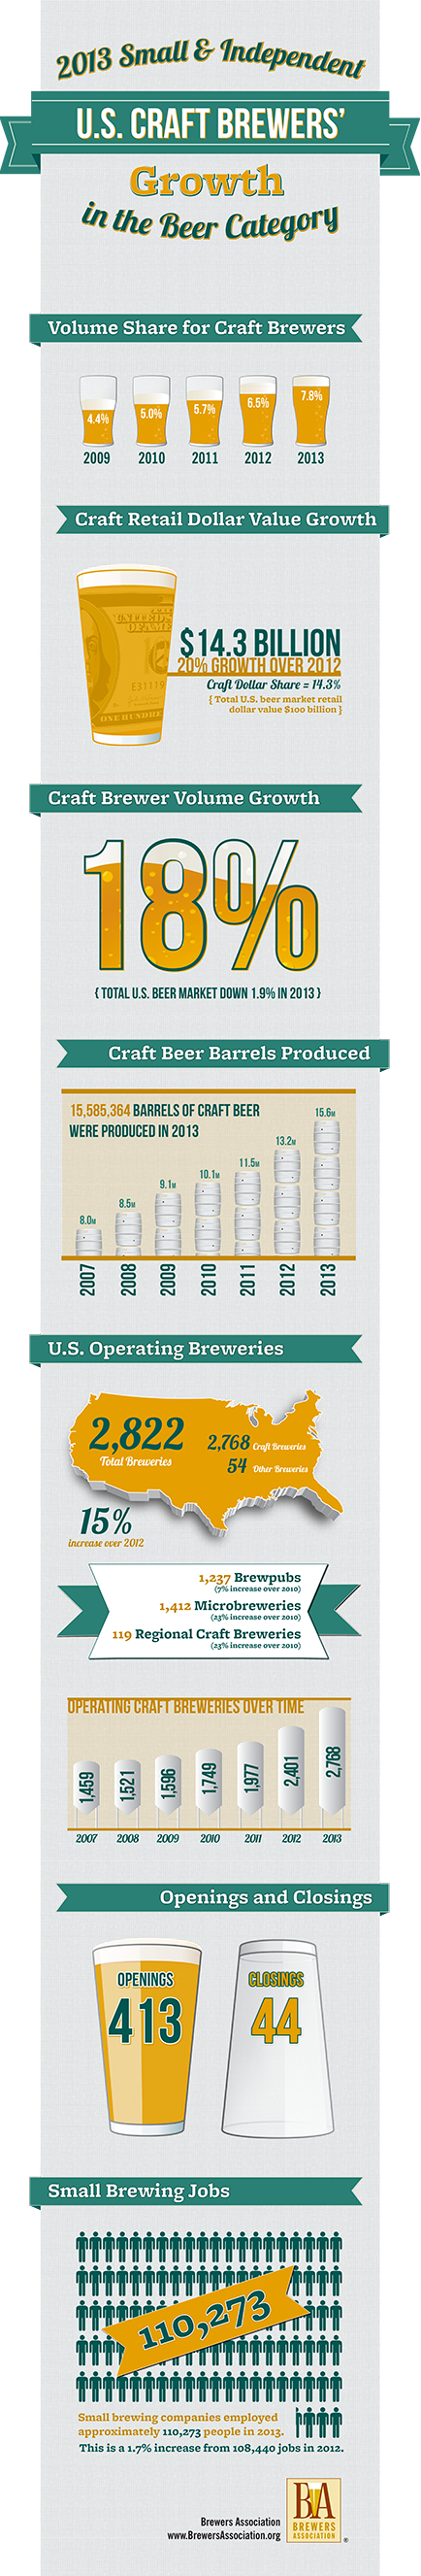 craft-beer-growth-2013